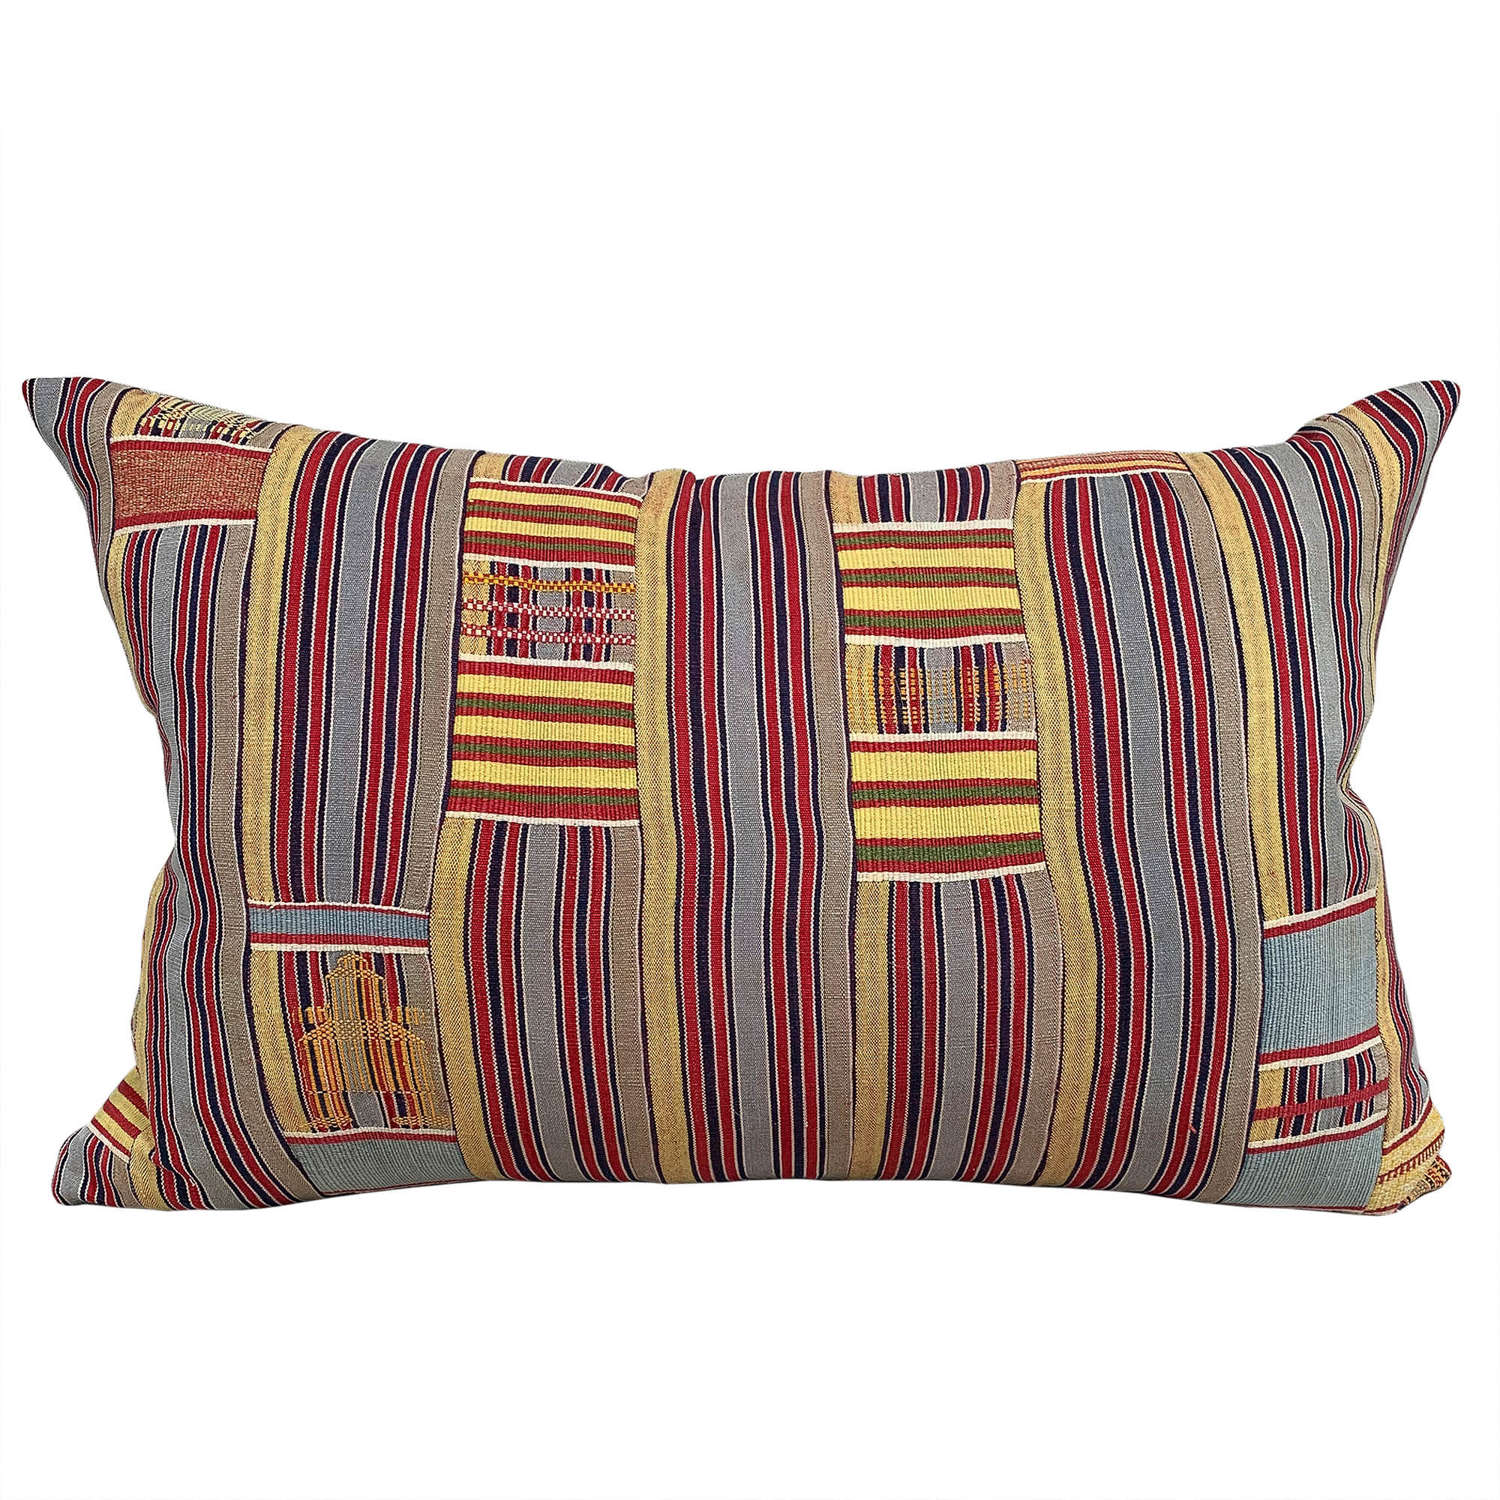 Faded yellow Ewe cushion